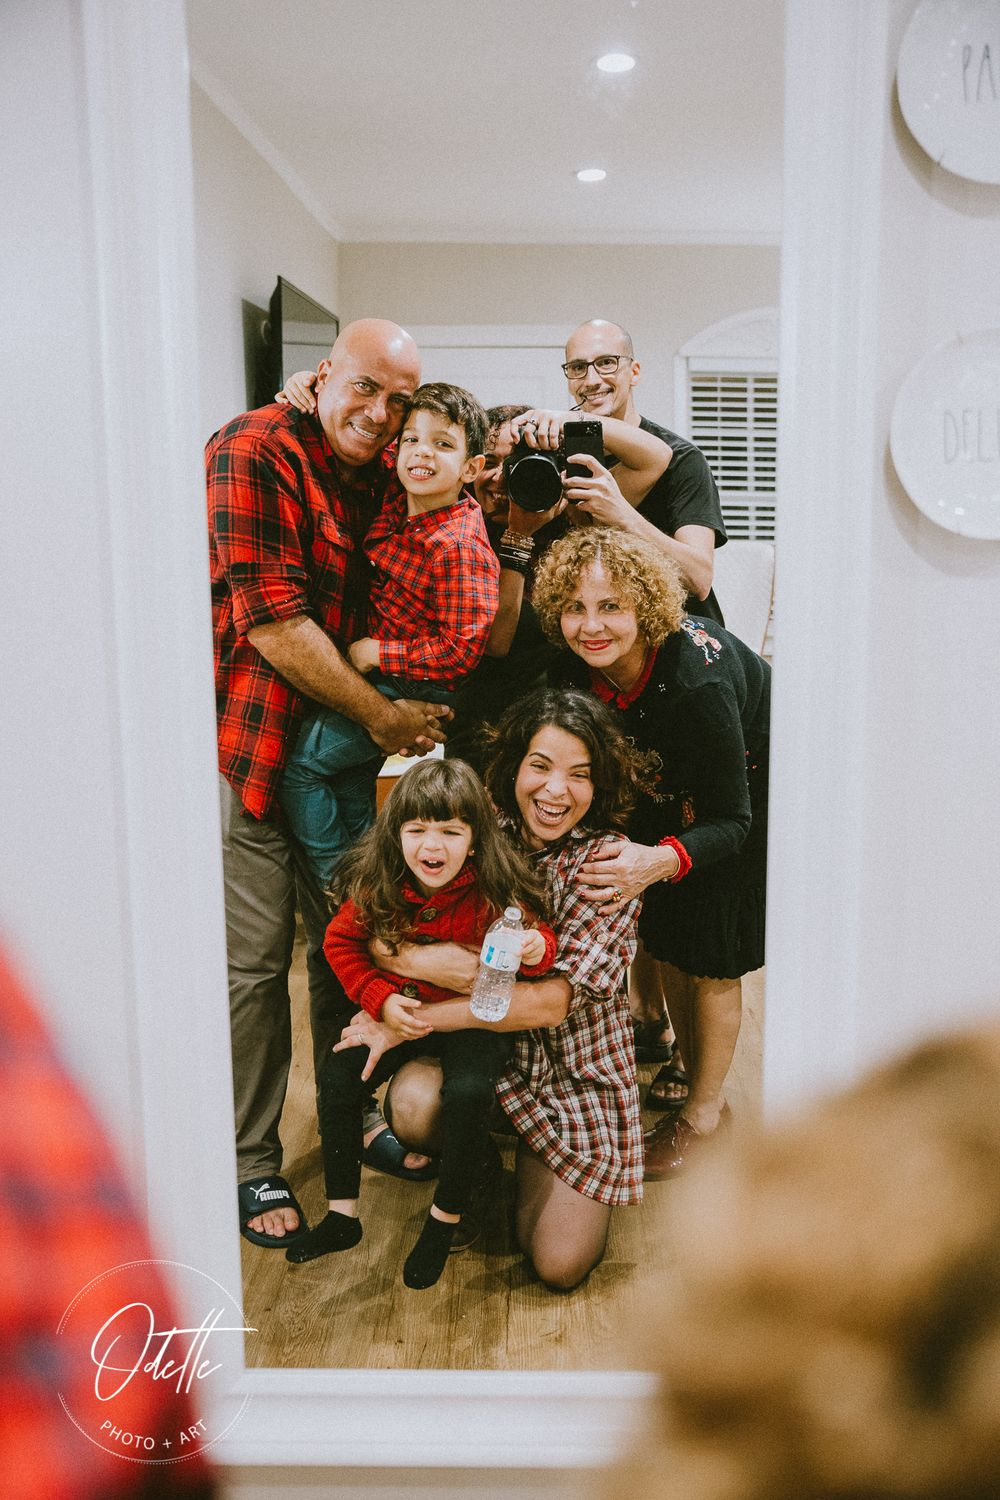 Family Photographer - If Not Now, When?